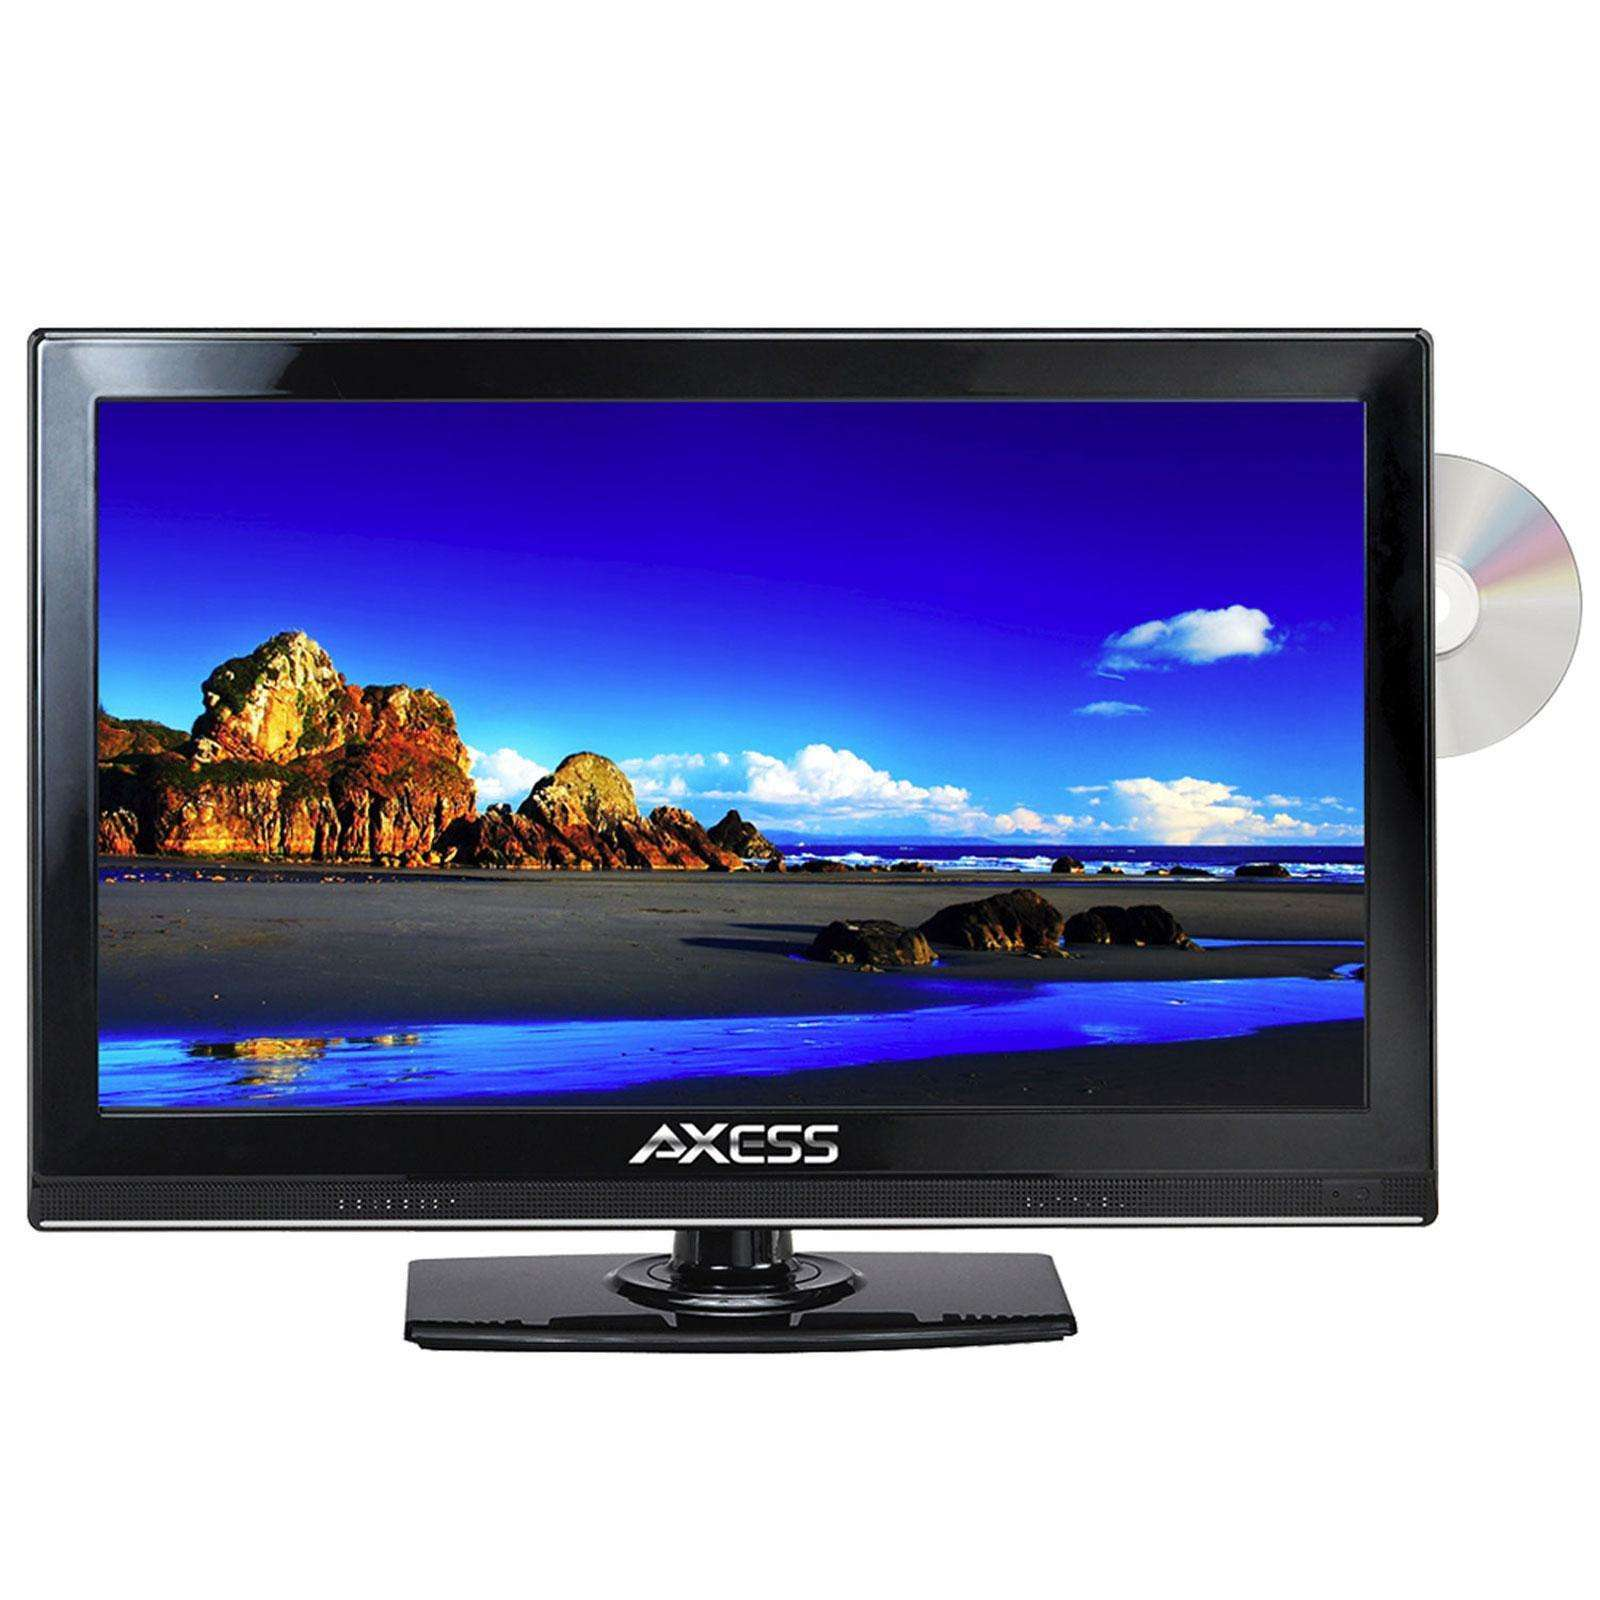 "Axess 15.4"" LED AC-DC TV with DVD Player Full HD with HDMI, SD card reader and USB"